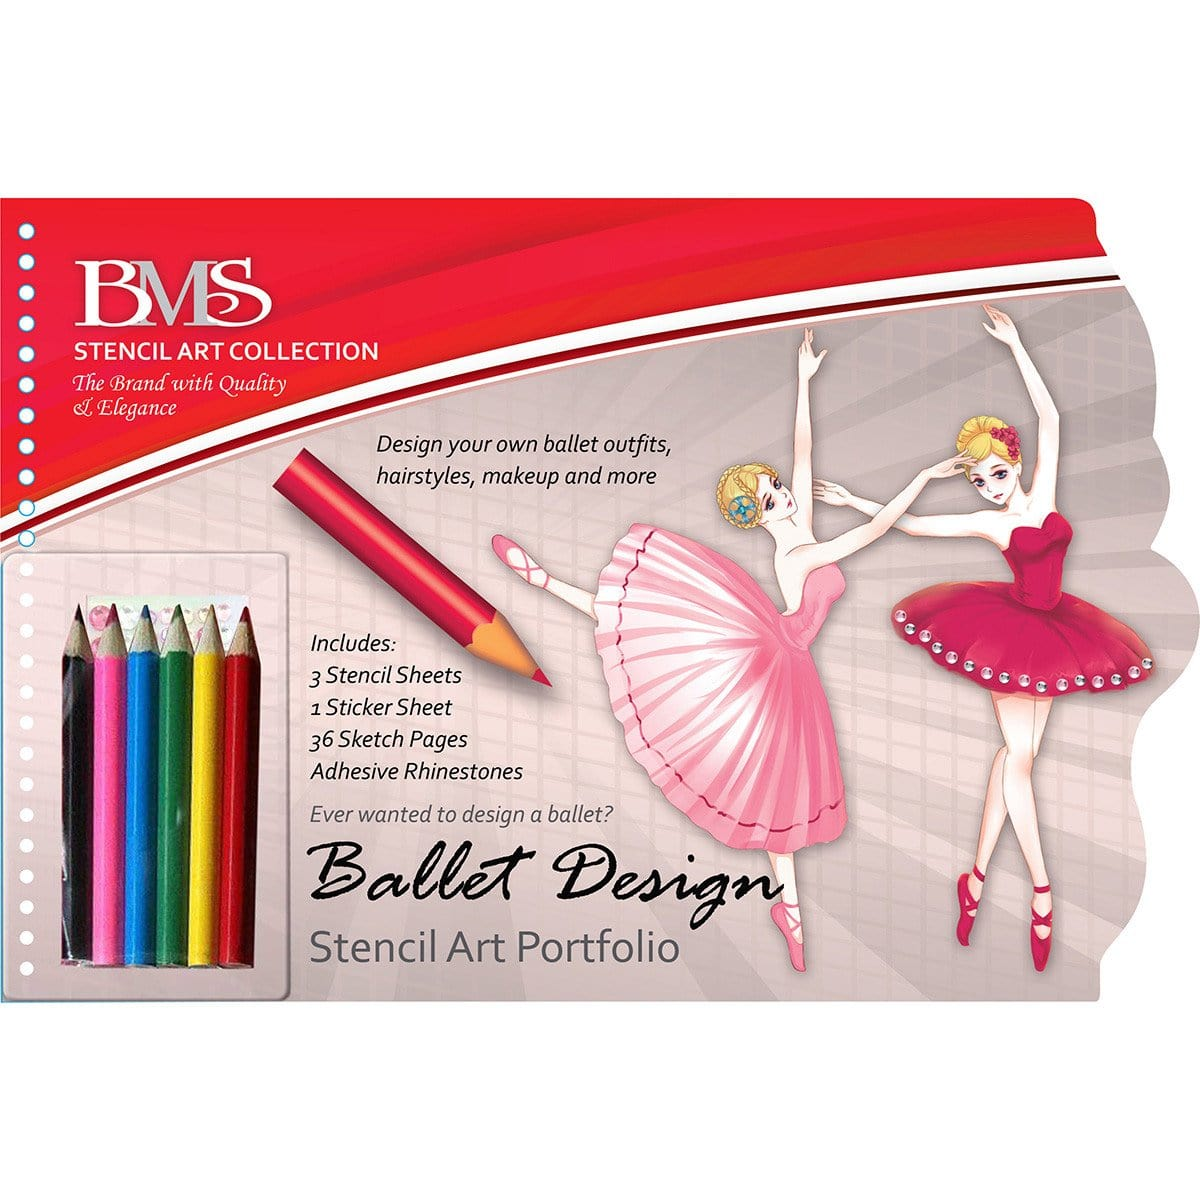 Ballet Design Stencil Art Portfolio With Pencils & Adhesive Appliques